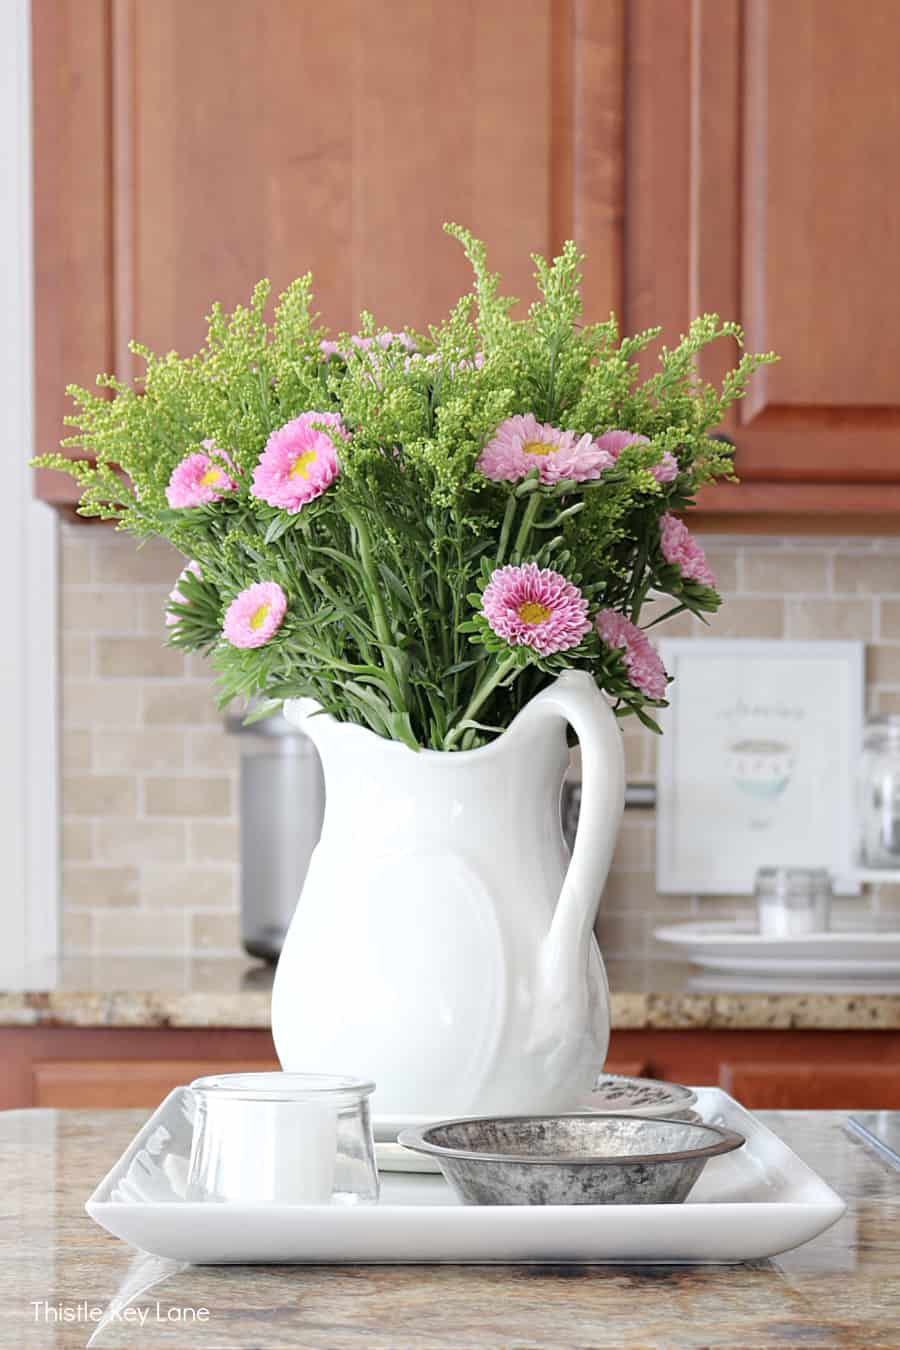 White ironstone pitcher with pink asters and greenery - Using Trays To Control Kitchen Clutter.